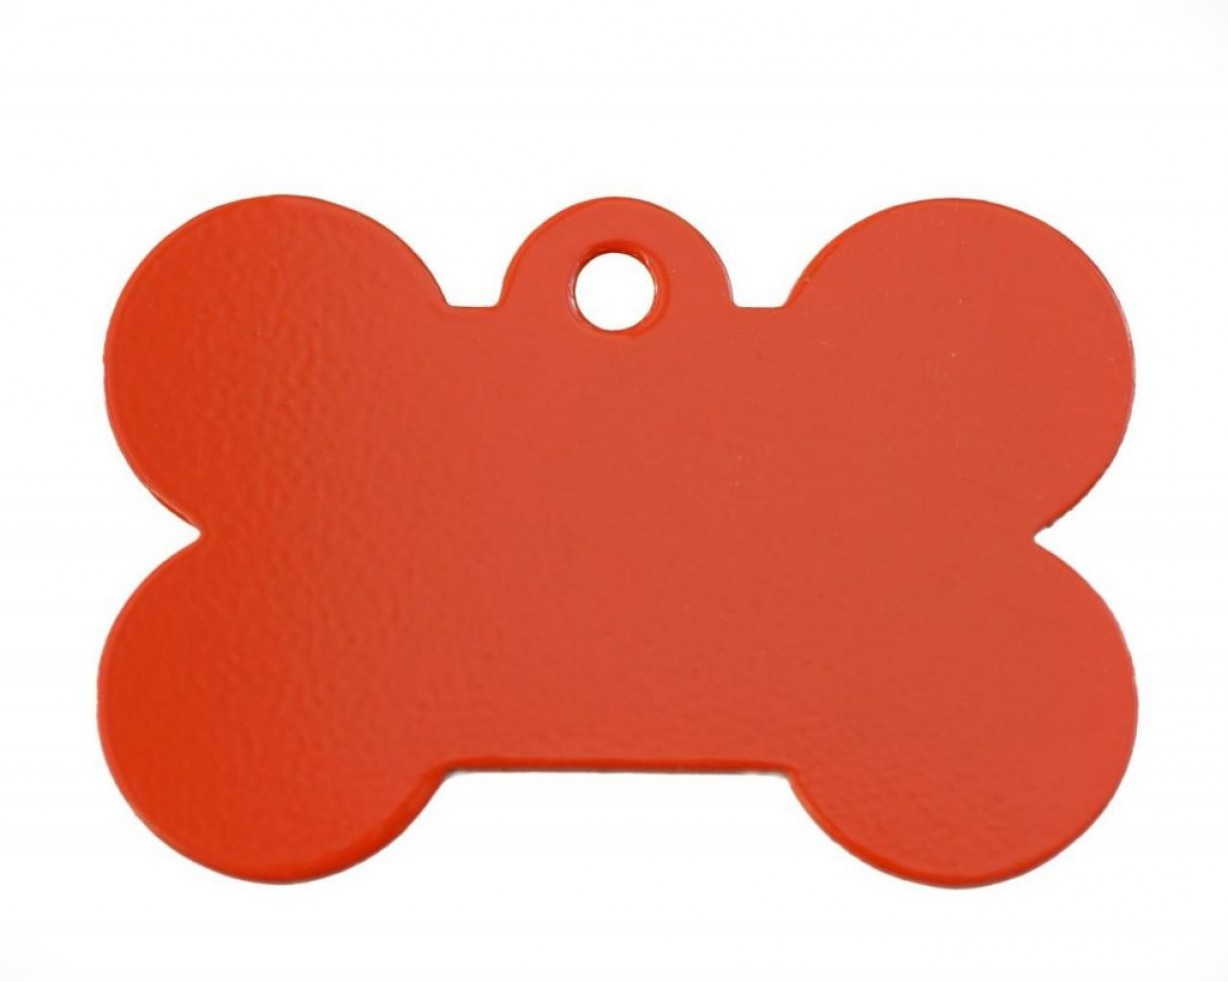 hight resolution of best bones clipart dog tag images